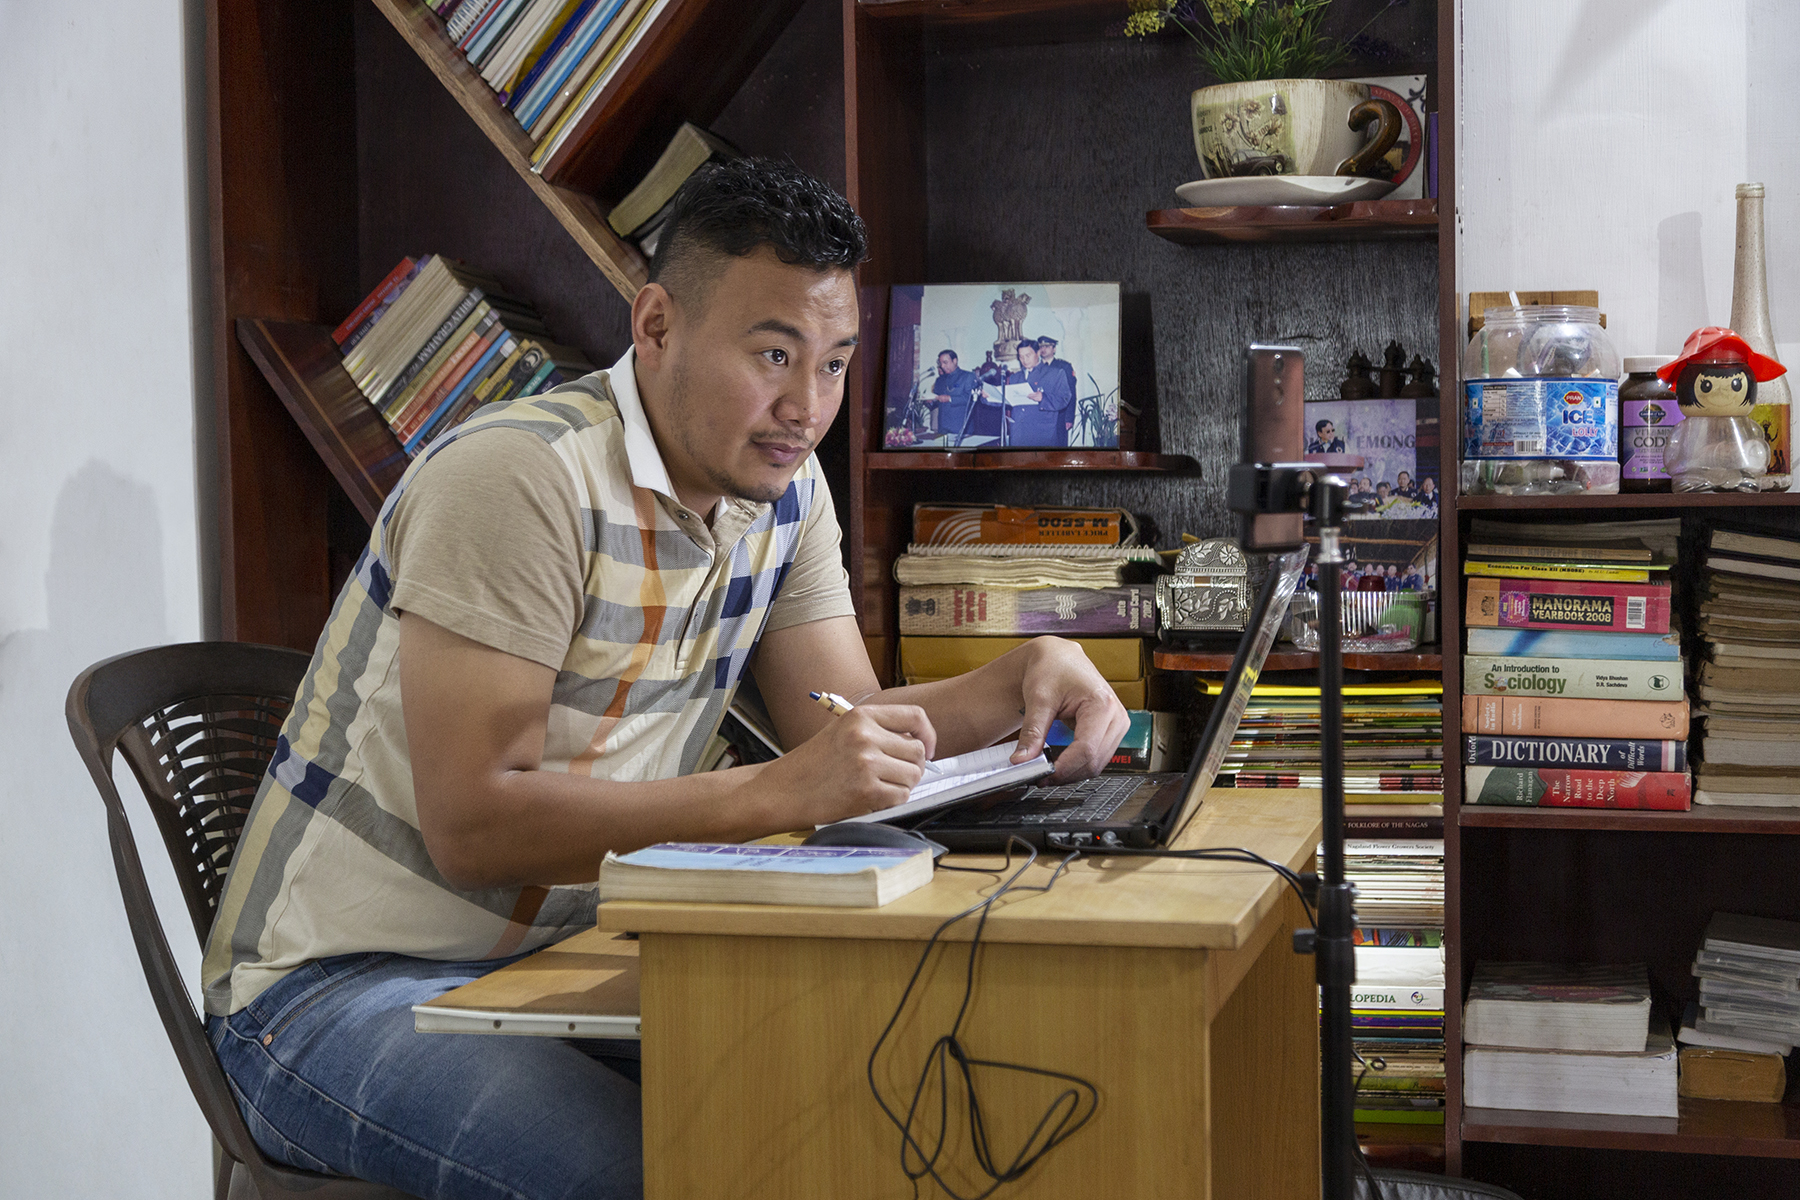 Kilumo wearing light blue jeans and a beige checked shirt sits in a brown plastic chair behind a table, writing something in a book with a pen. The desk is made of beige wood and there is an open laptop on it. Behind him is a large wooden rack with books.